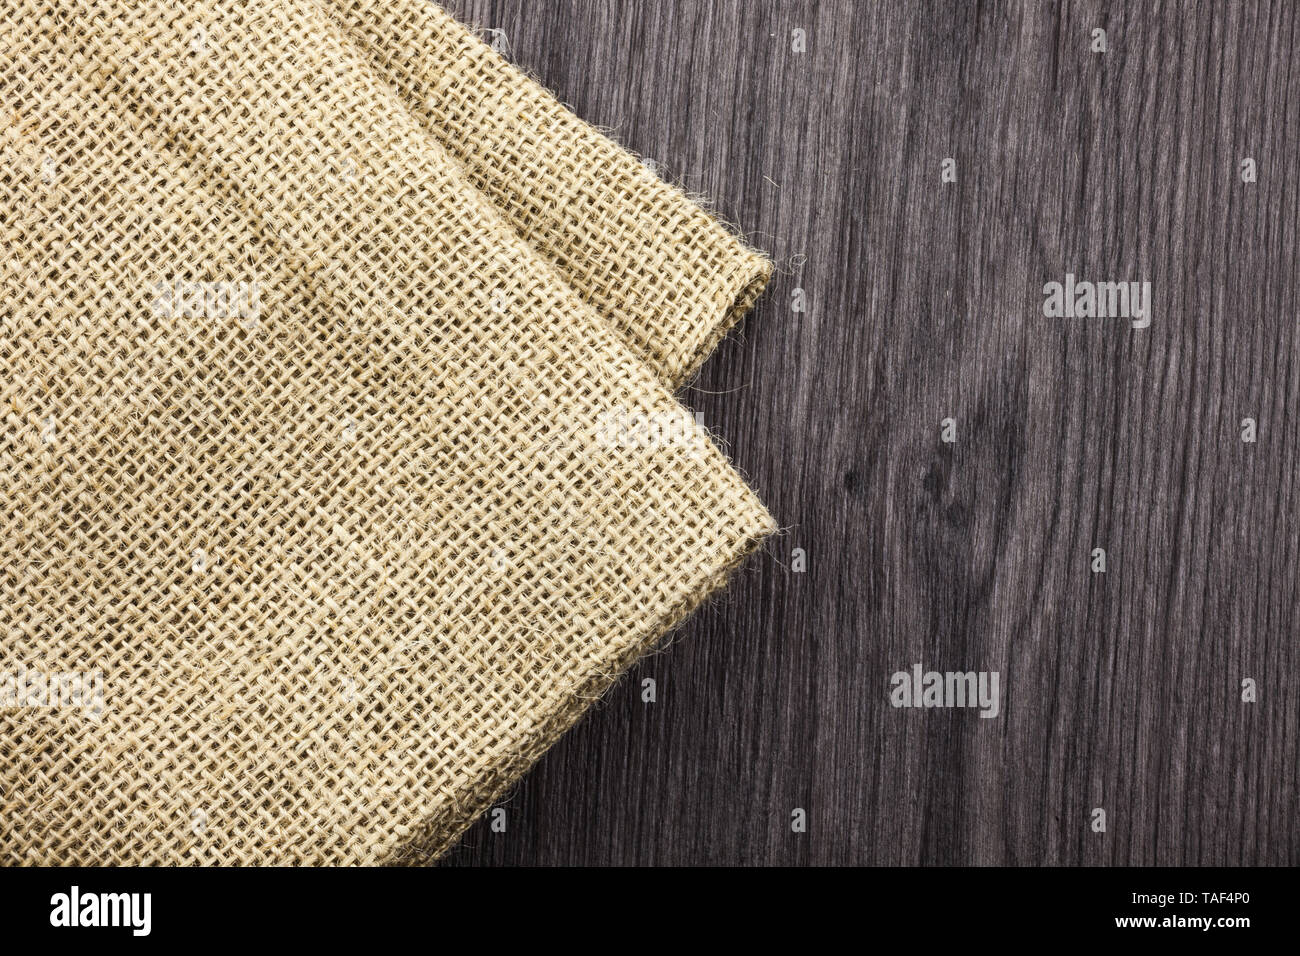 Front view wooden background blank textile, jute linen, tag. Fabric design - Stock Image